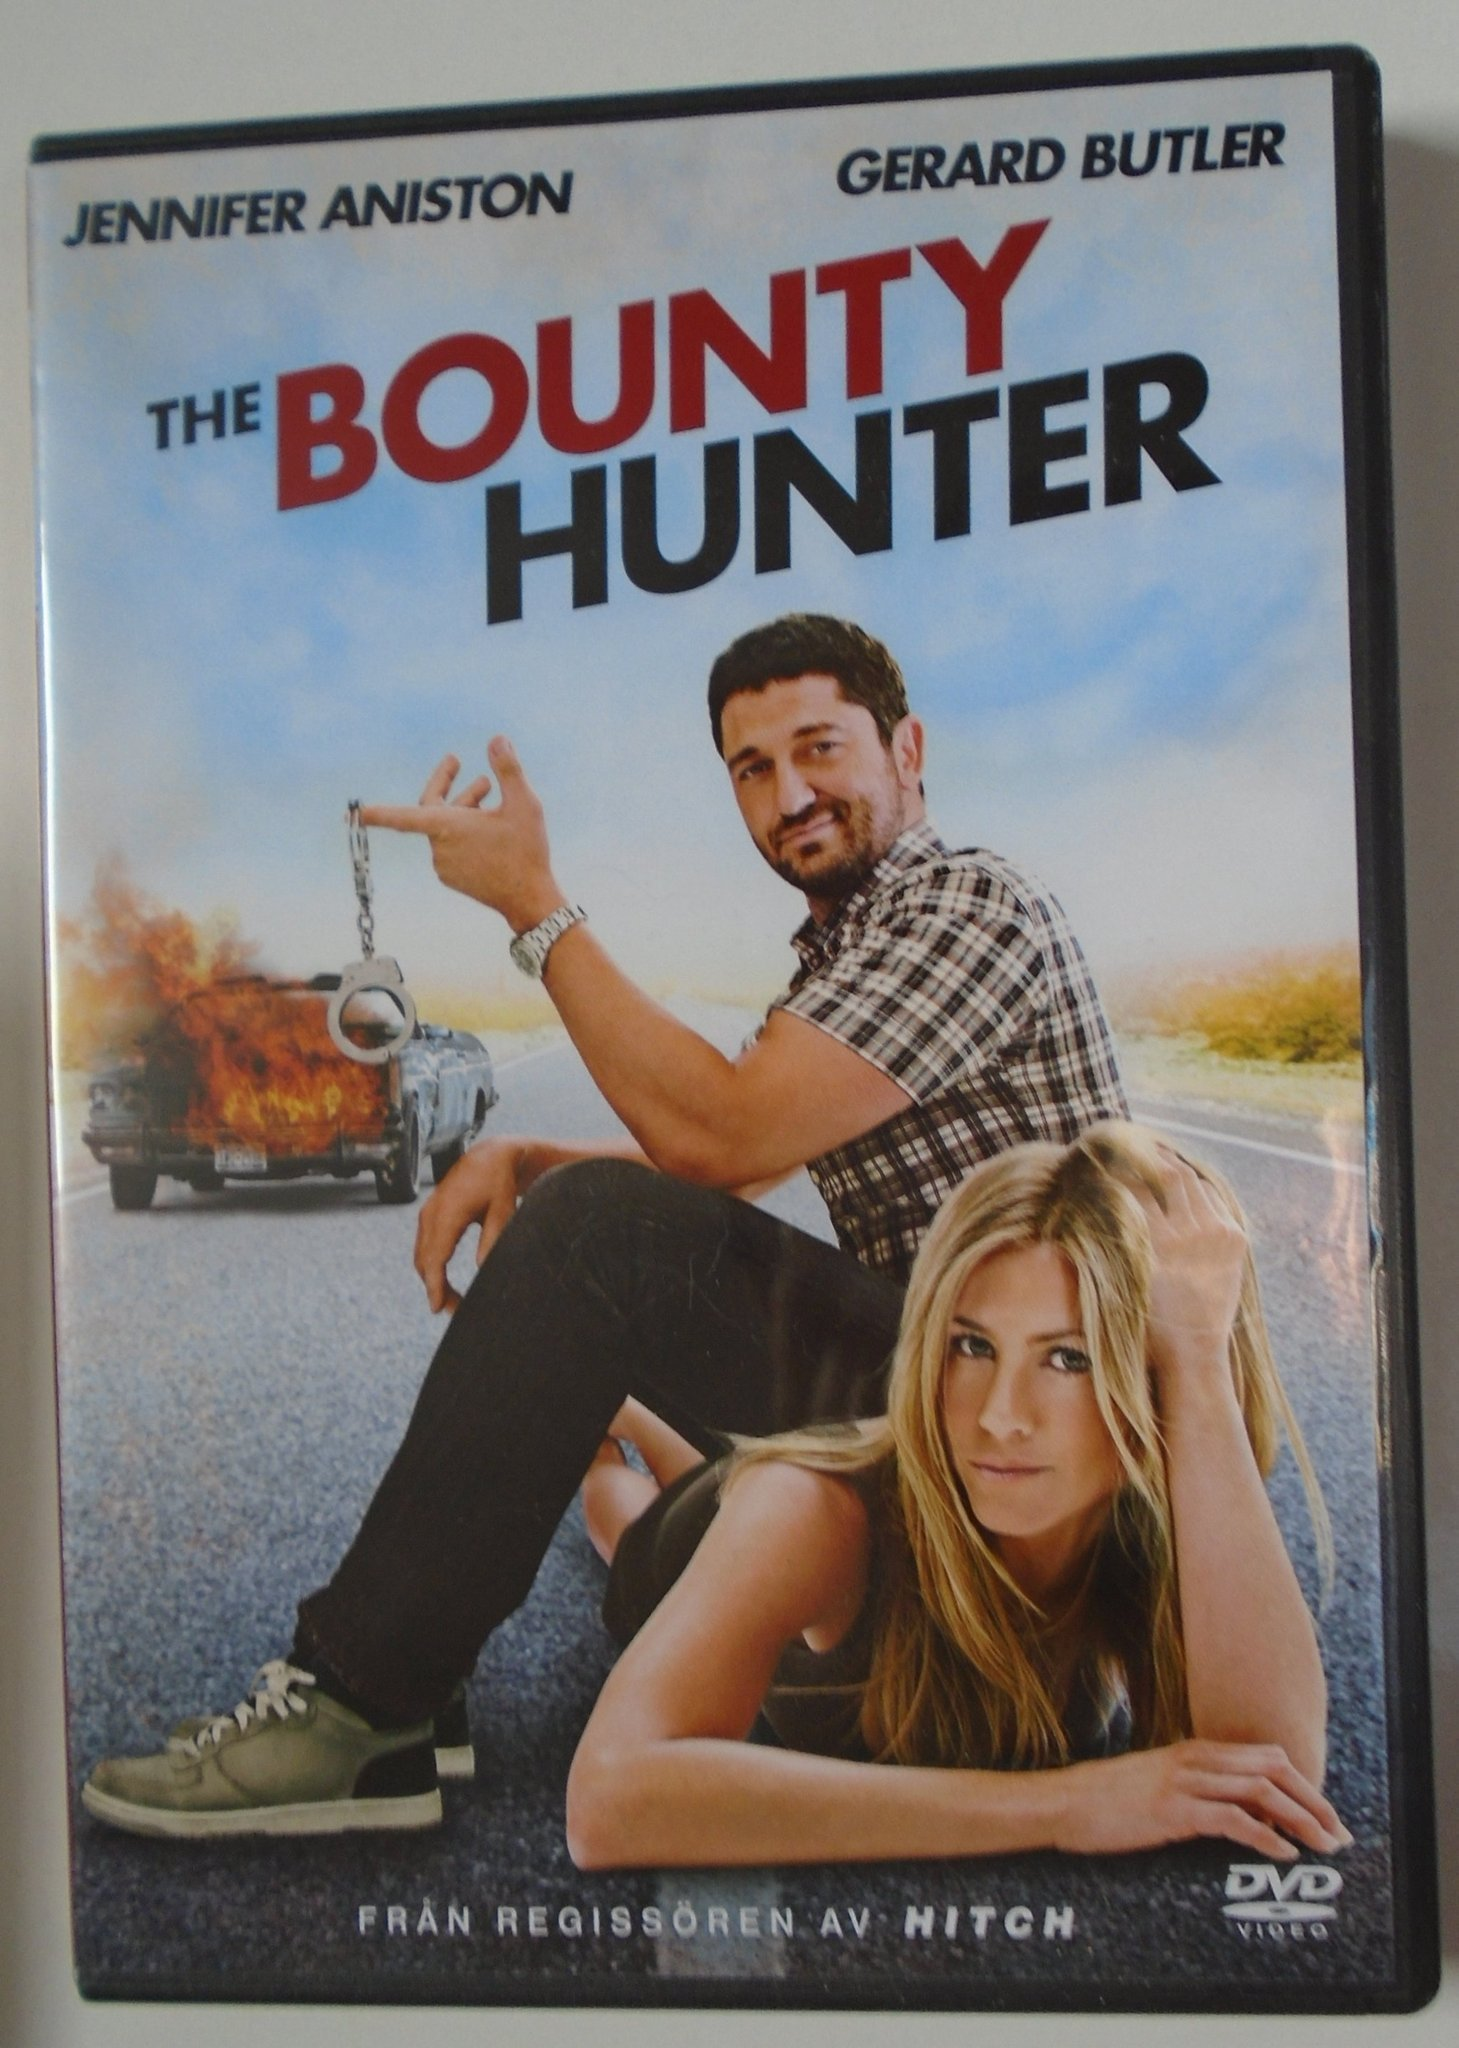 Dvd The Bounty Hunter Action/komedi Gerard Butler Jennifer Aniston